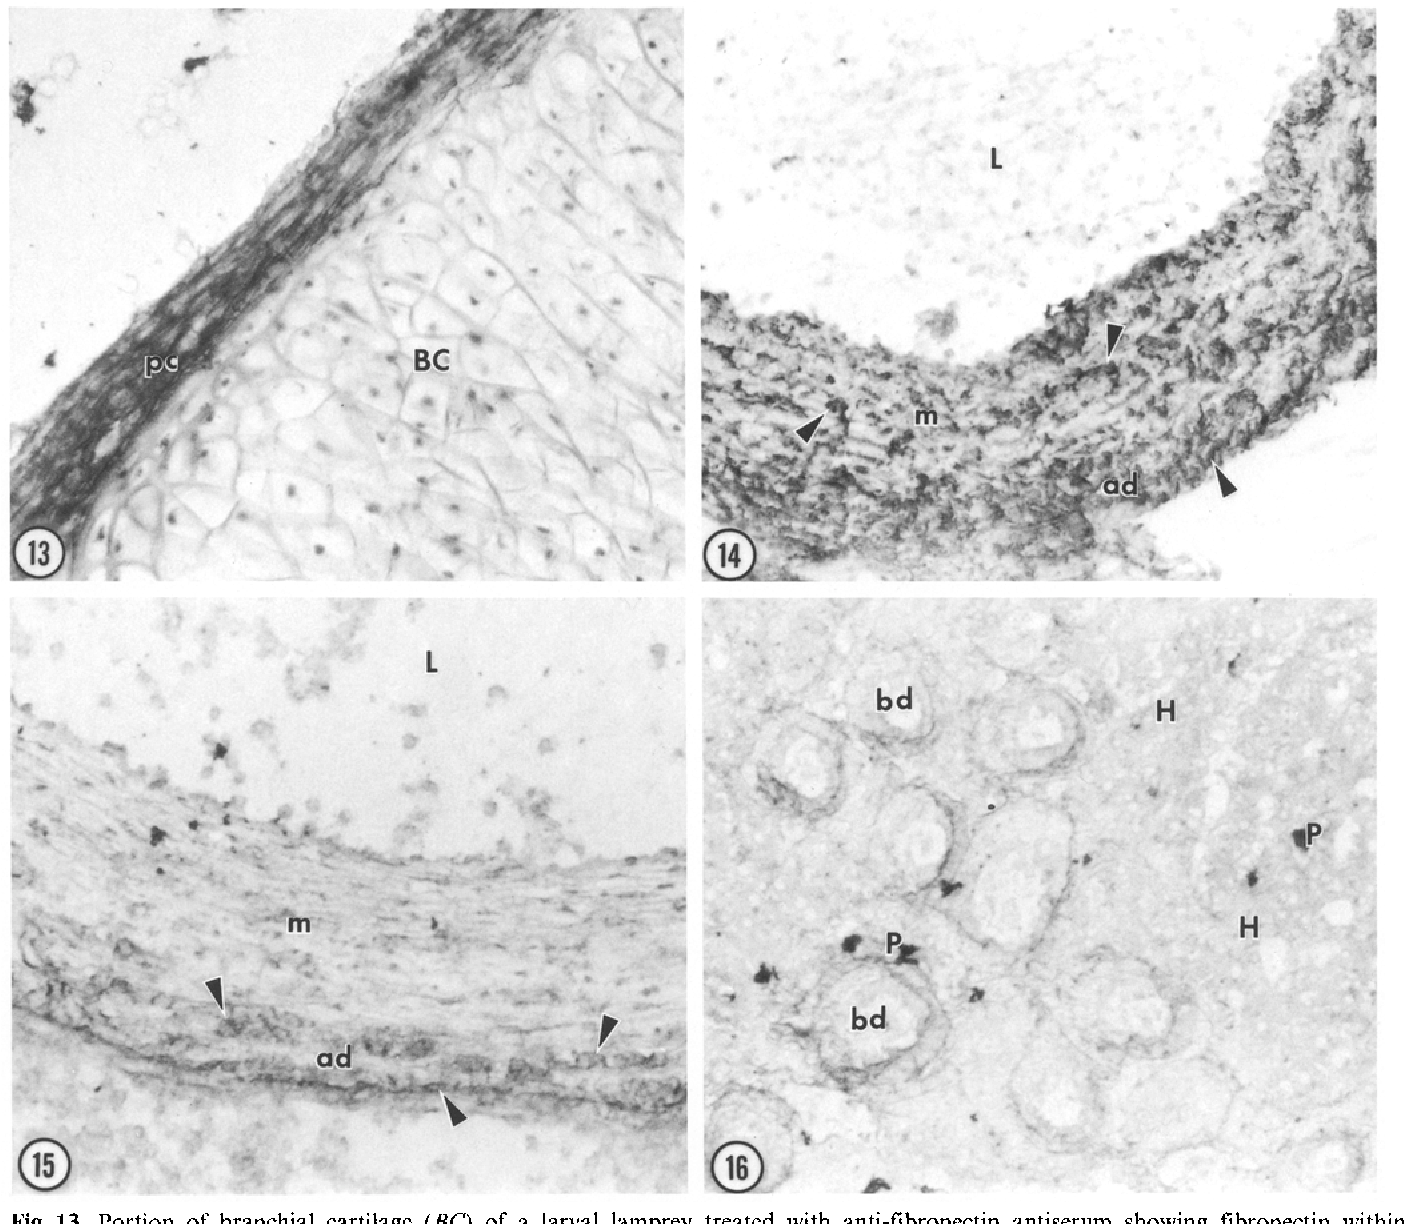 Fig. 13. Portion of branchial cartilage (BC) of a larval lamprey treated with anti-fibronectin antiserum showing fibronectin within perichondrium (pc). x 400